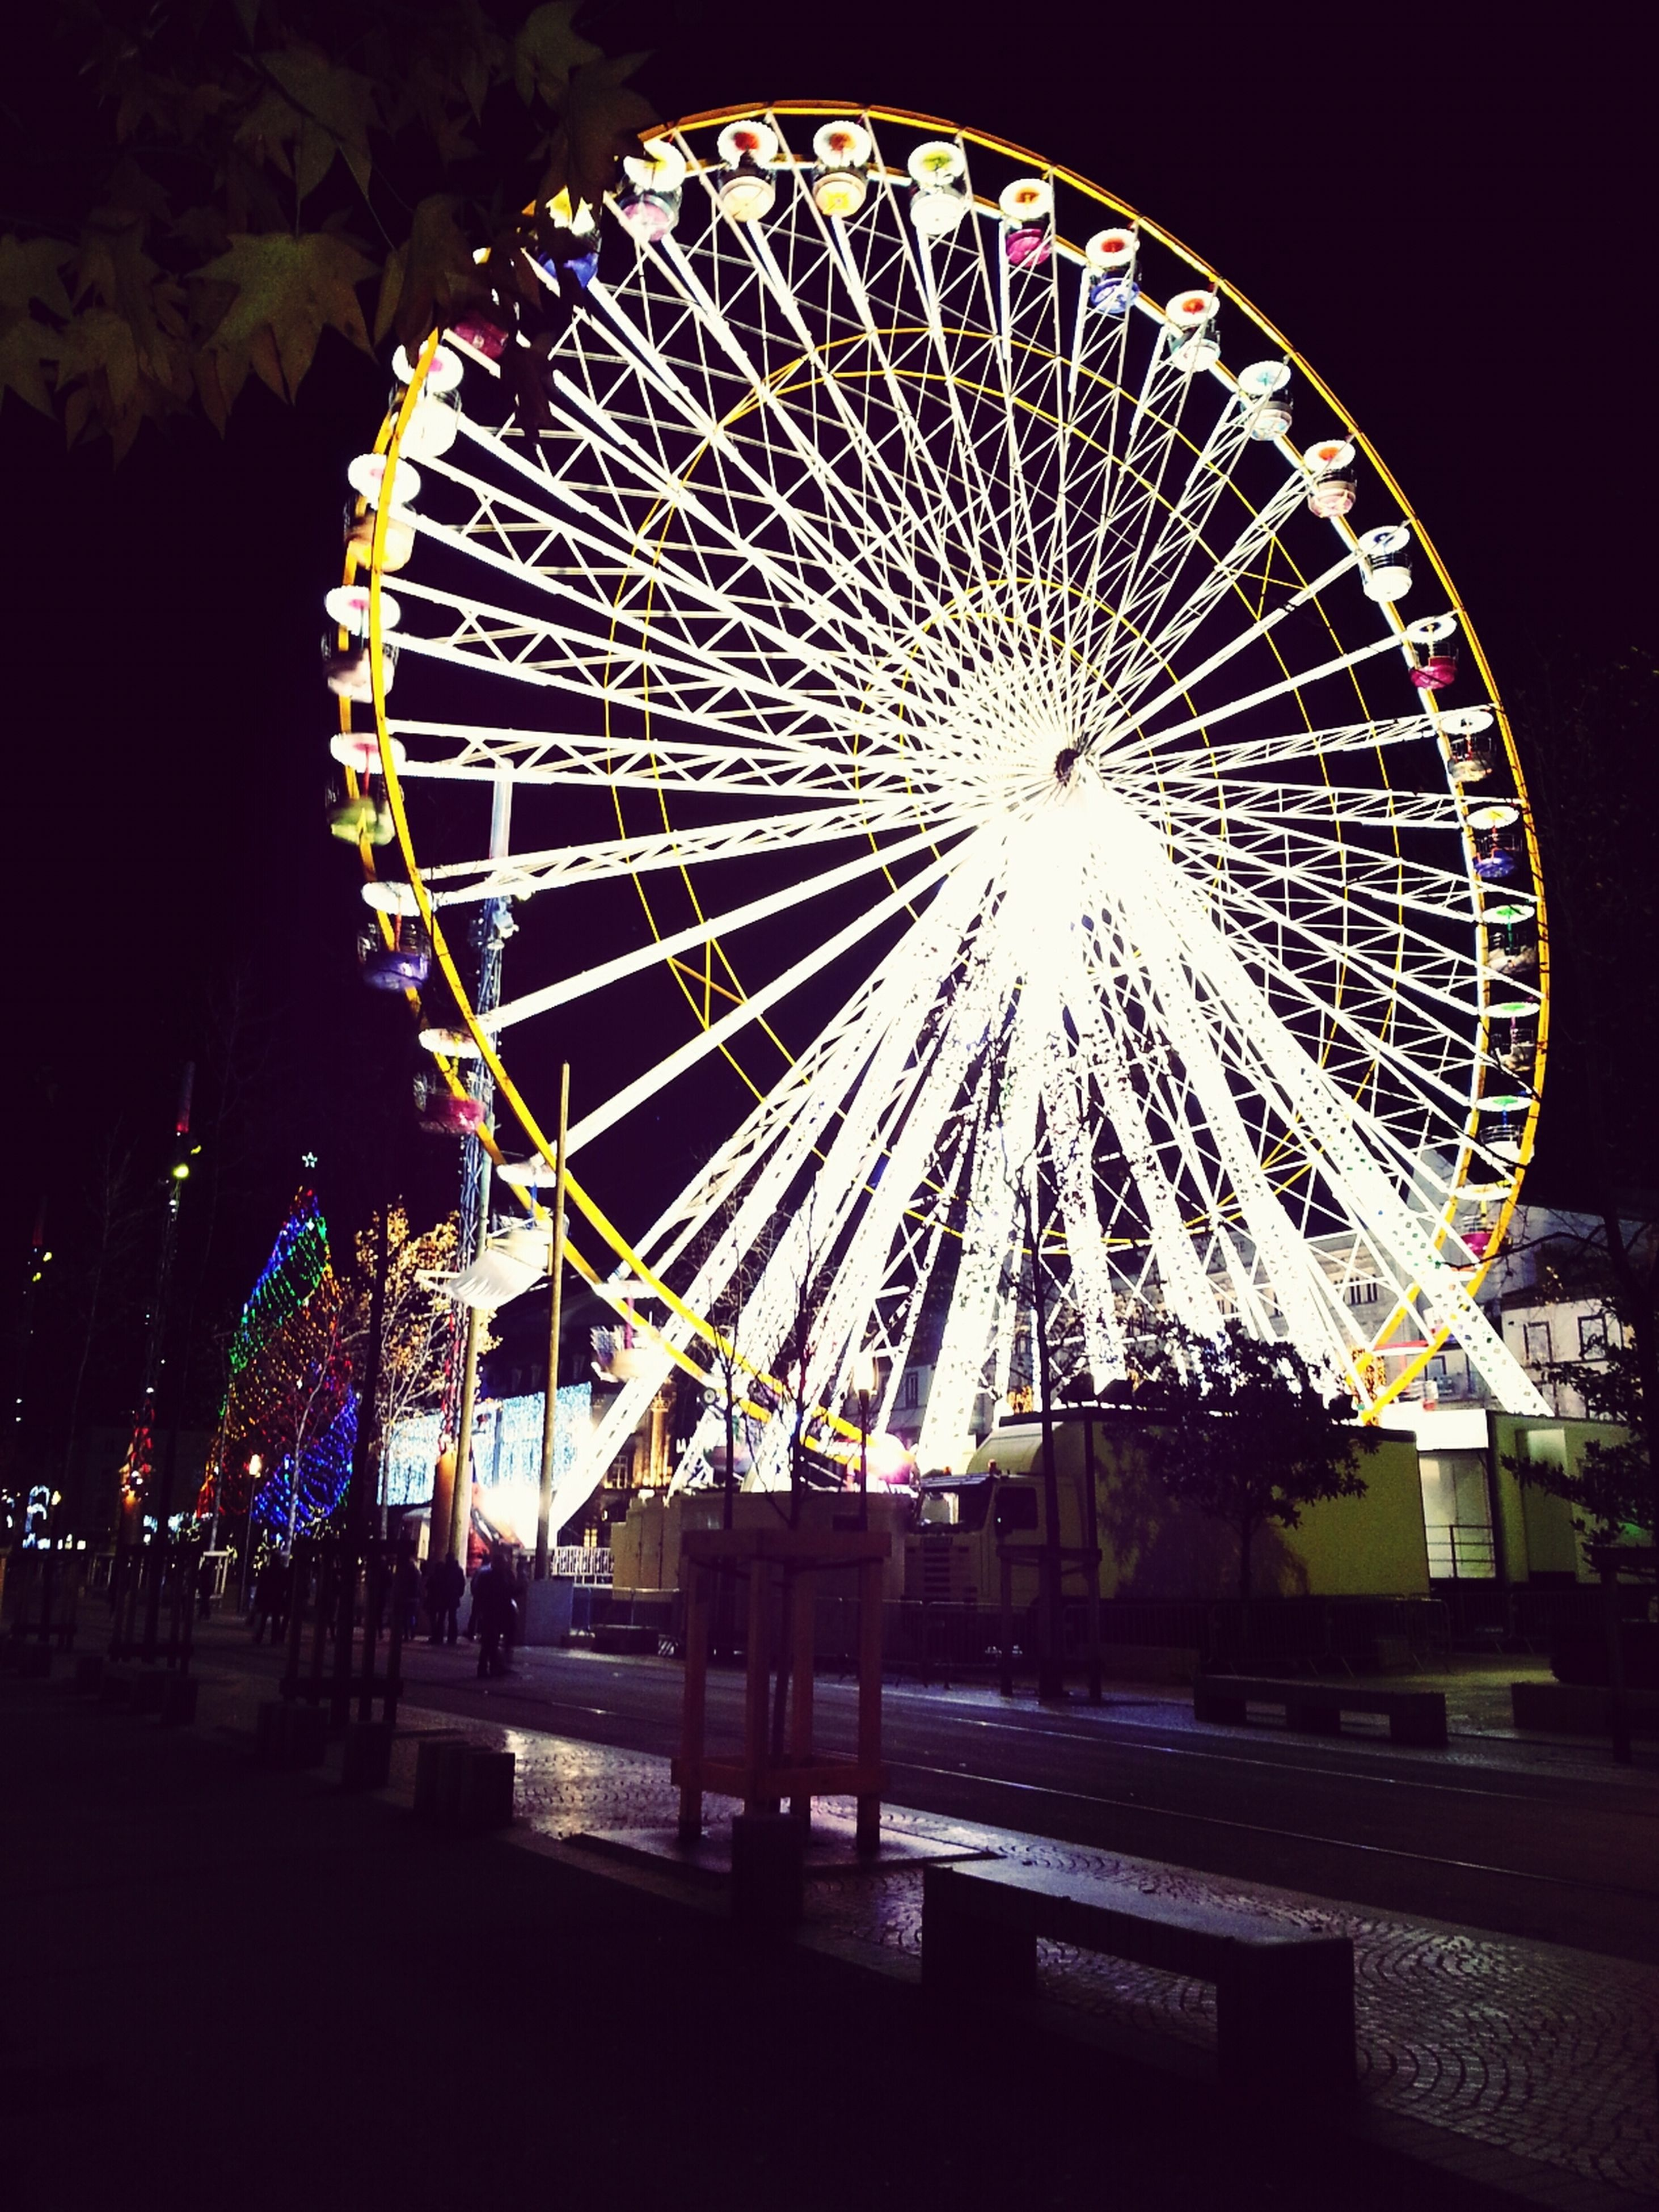 night, illuminated, arts culture and entertainment, ferris wheel, built structure, amusement park, amusement park ride, low angle view, architecture, sky, glowing, outdoors, long exposure, building exterior, no people, circle, incidental people, street light, city, lighting equipment